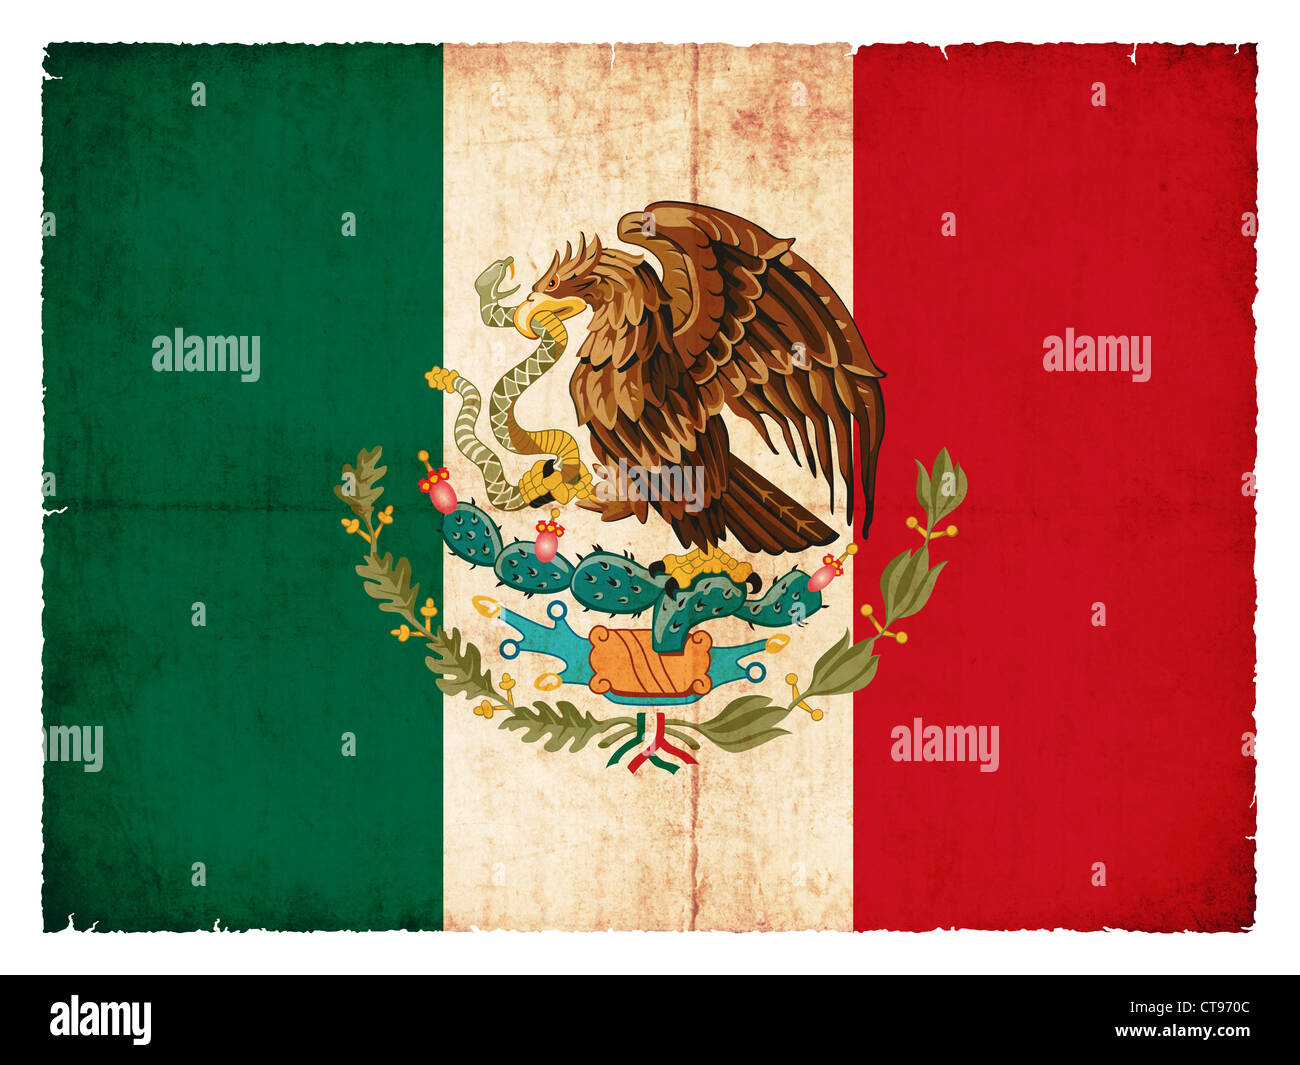 National Flag of Mexico created in grunge style - Stock Image